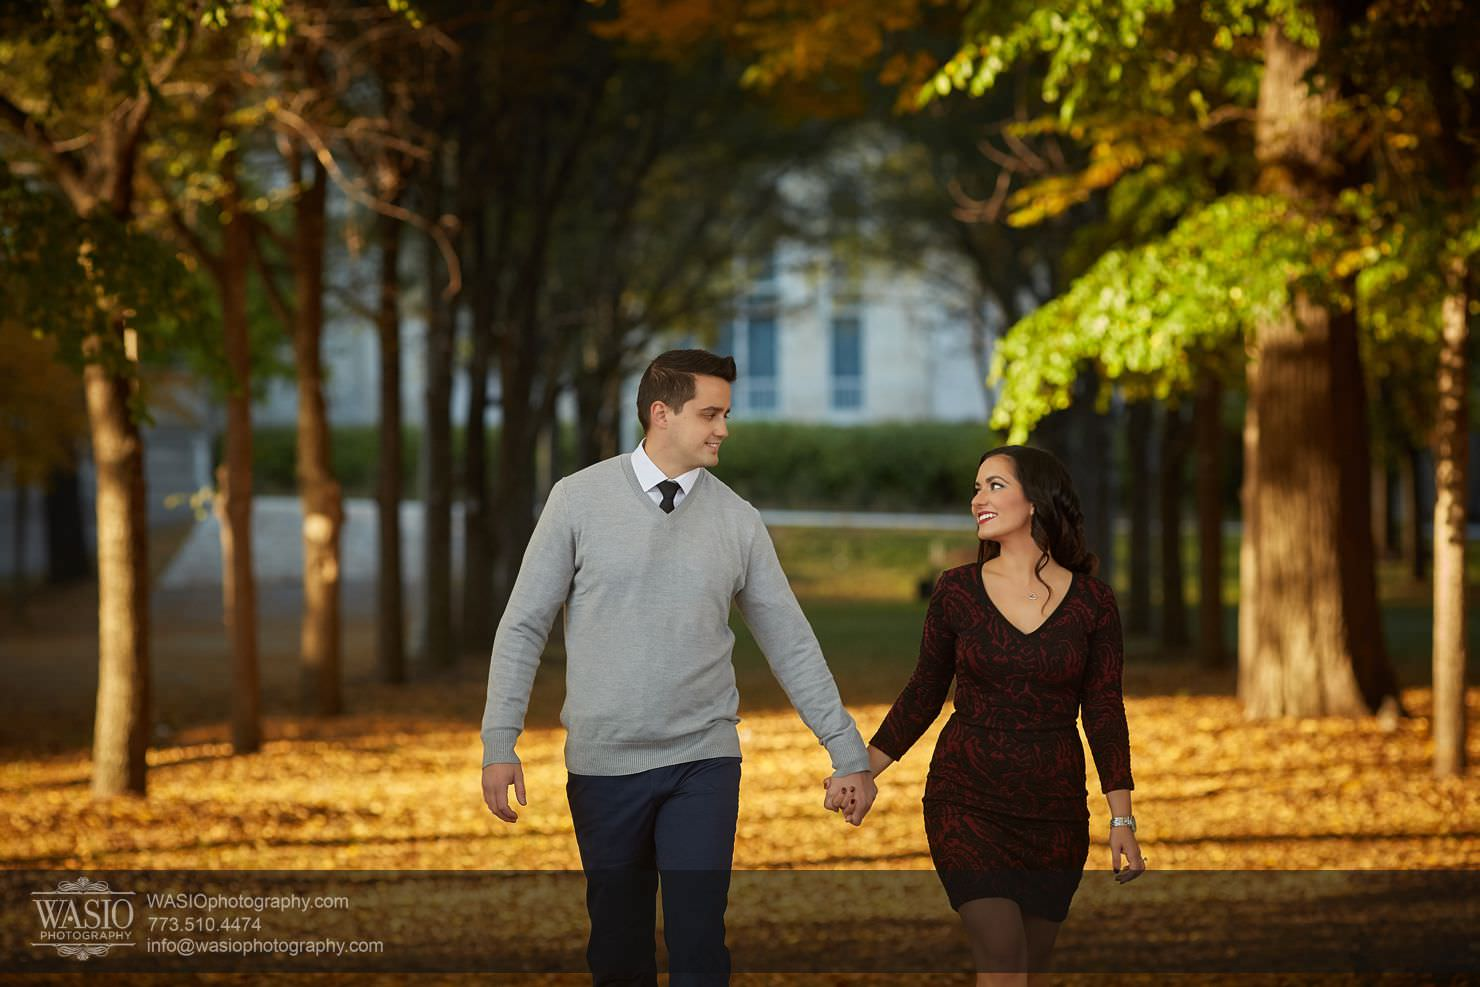 07_Chicago-Fall-Engagement_3P4C5054 Chicago Fall Engagement - Rubina + Eric